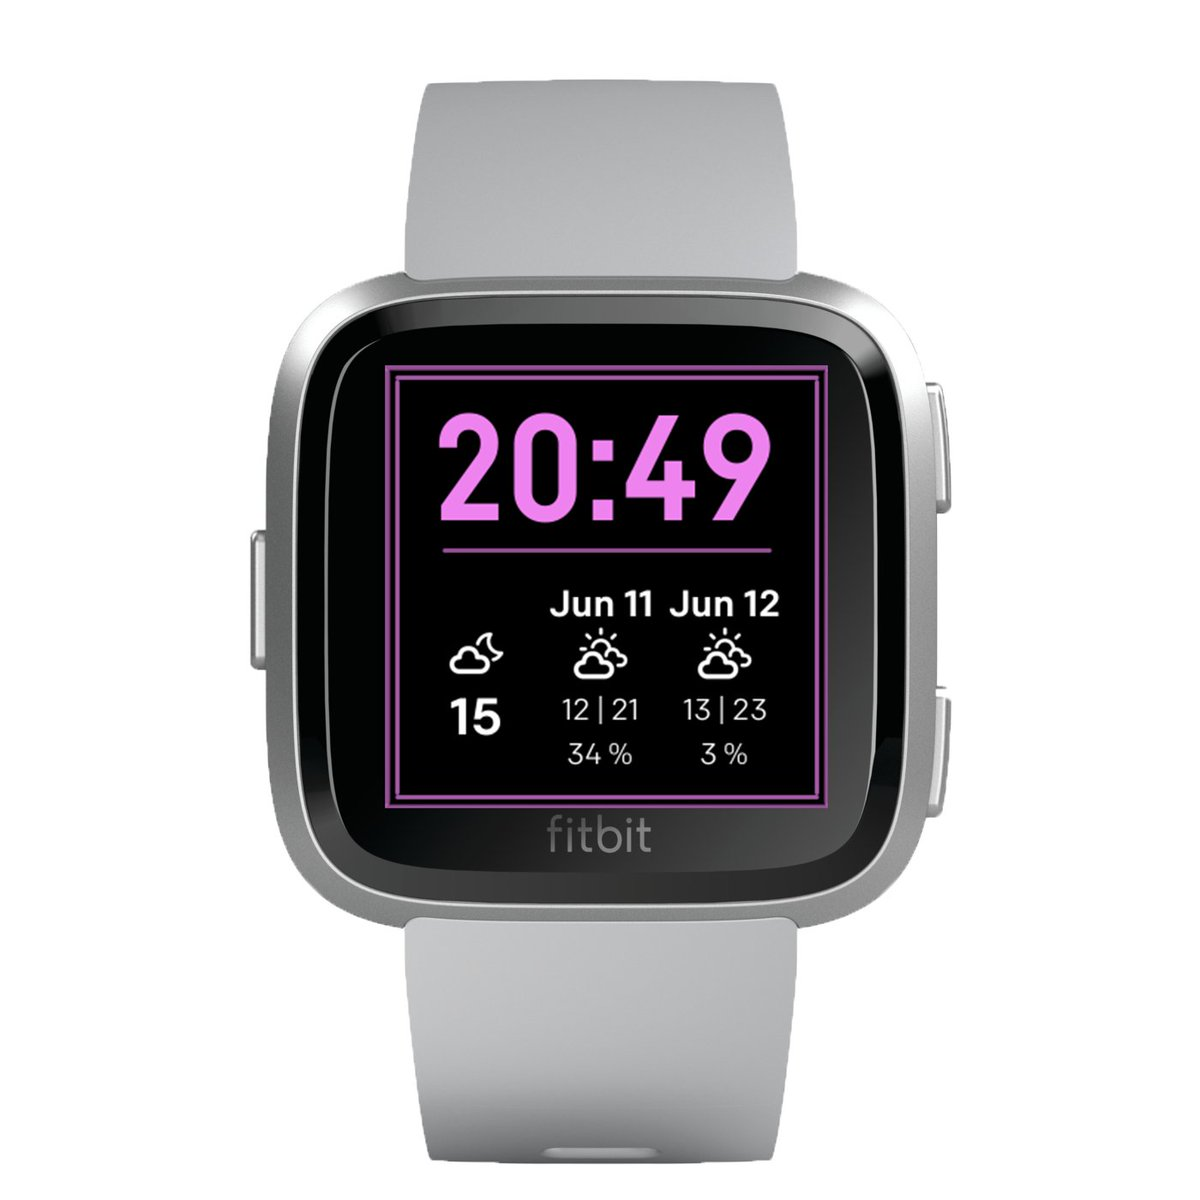 http://www.watchfacestore.com/fitbit  has amazing #fitbit #watchfaces. Get to know the The Weather Forecast. A clean and comfortable to read face that shows the time and the detailed 2-day weather report..#fitbitversa2 #fitbitversa #fitbitionic #fitness #made4fitbit #clockface #watch #apppic.twitter.com/NbcmsEKJ3K